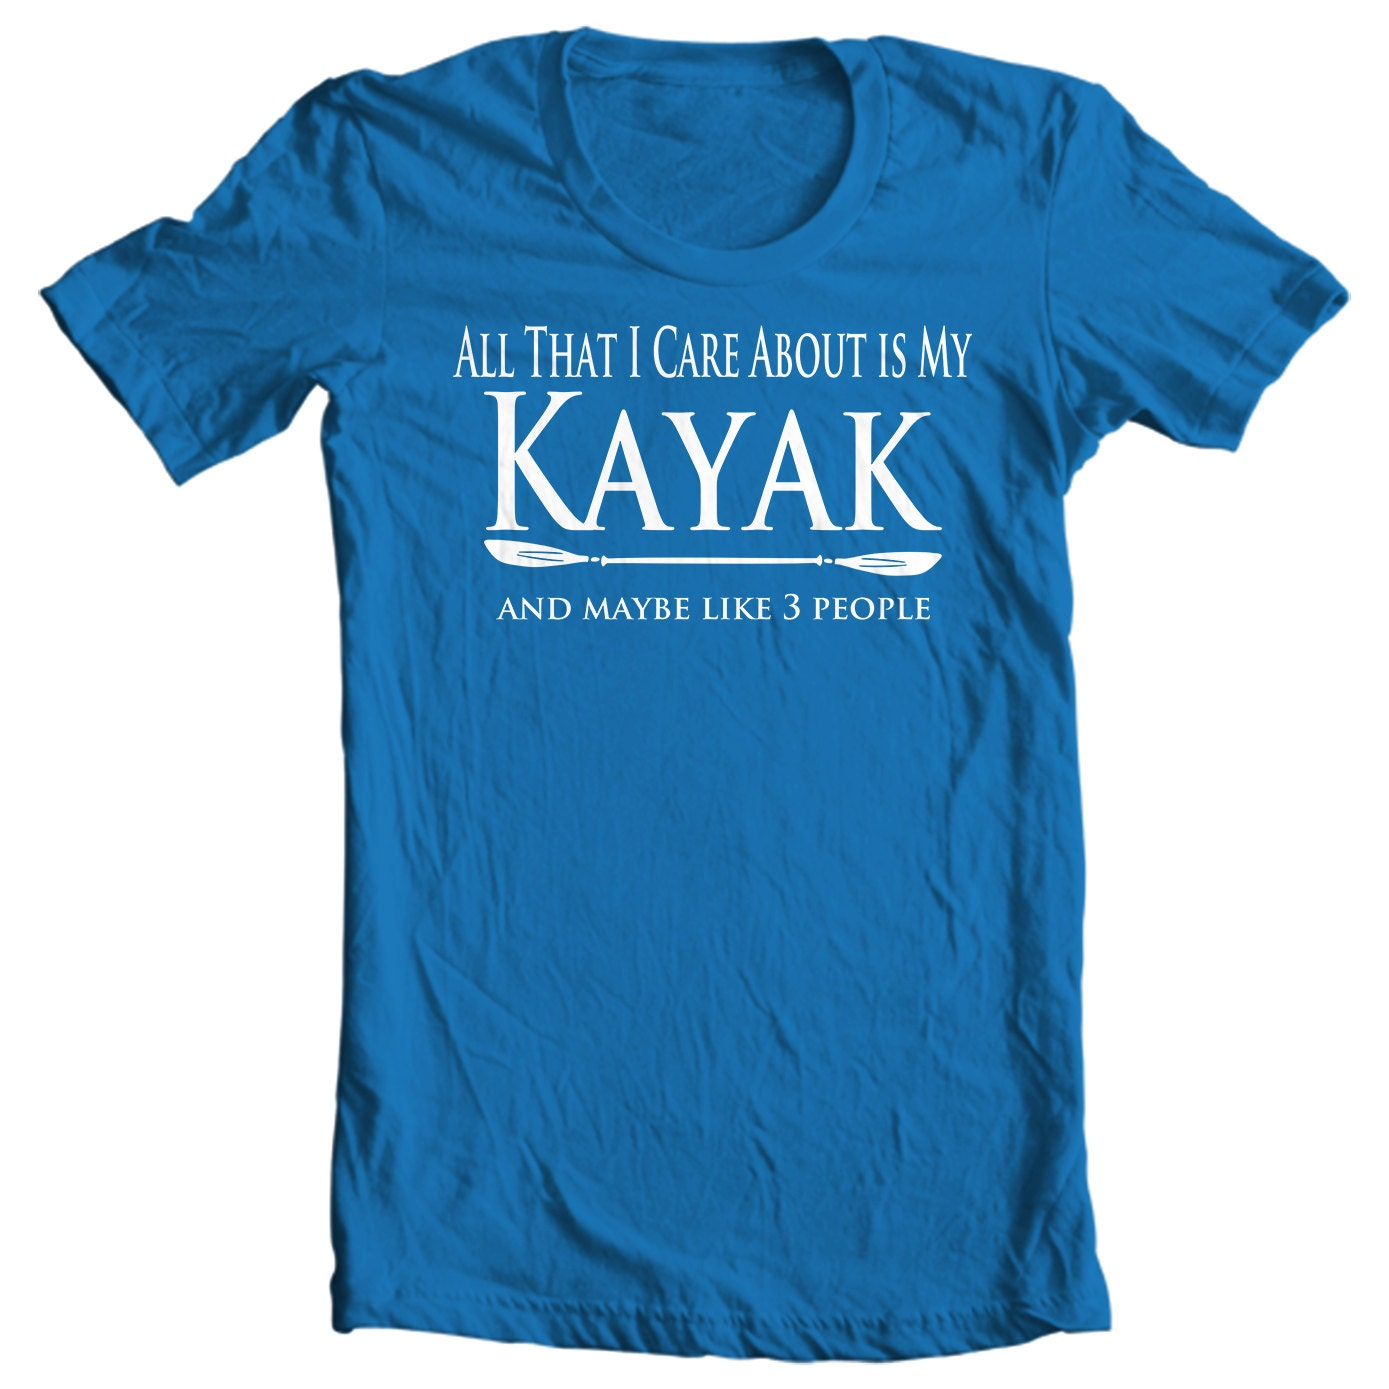 Kayak T-shirt - All That I Care About Is My Kayak And Maybe Like Three People - Paddle Life Kayaking T-shirt